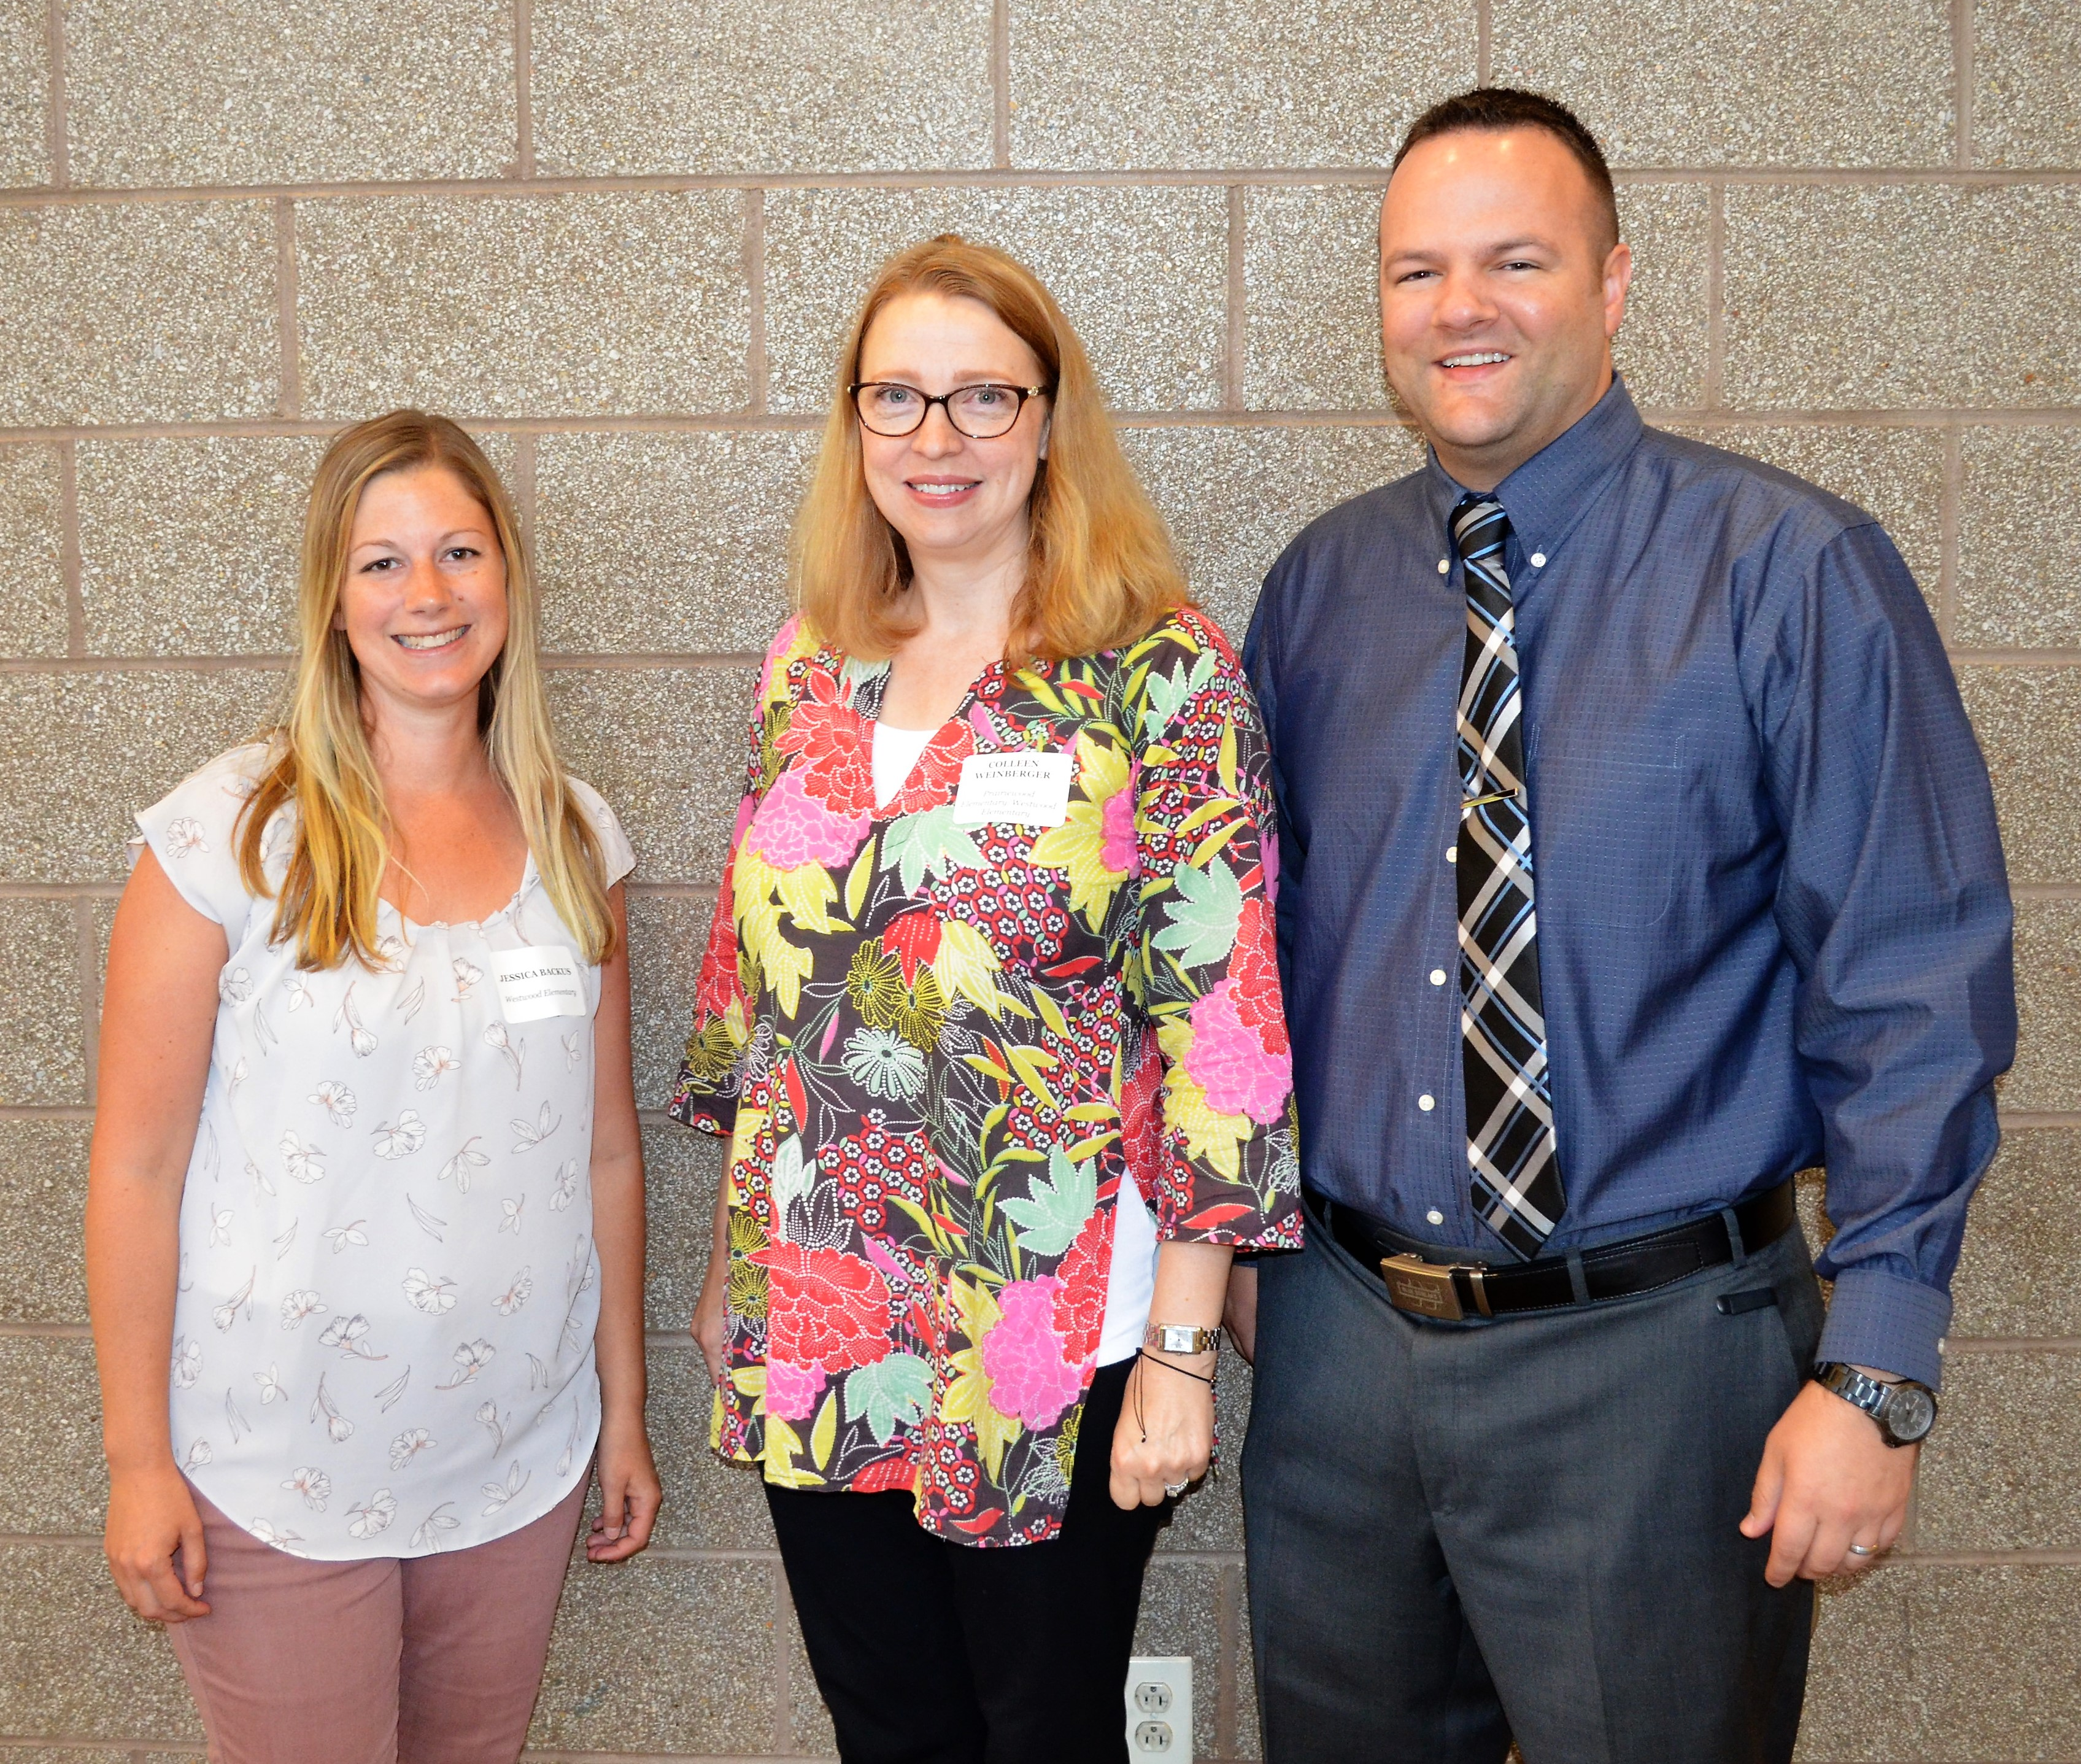 New staff at Westwood Elementary